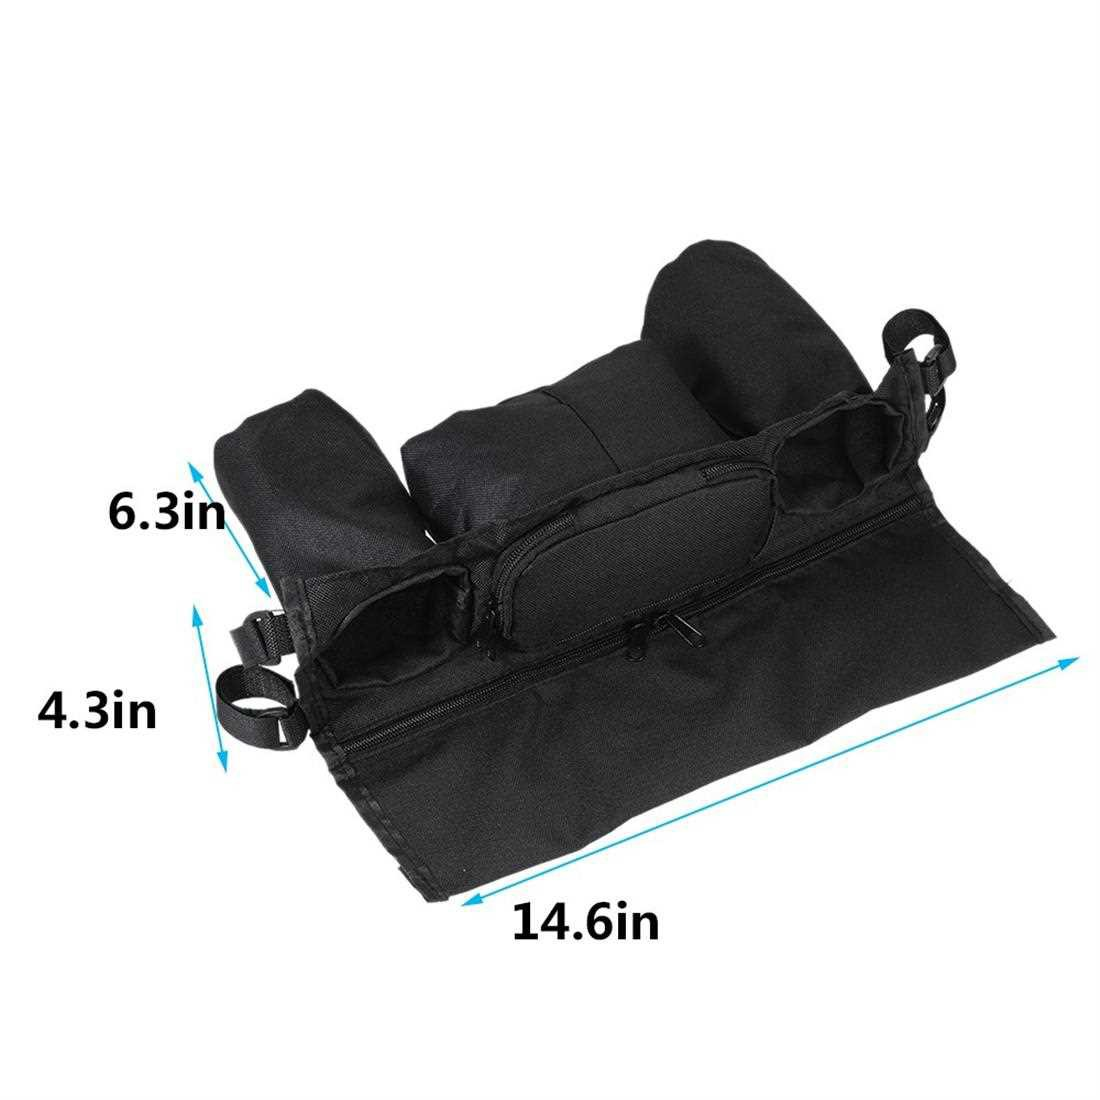 Universal Baby Stroller Organizer Diaper Bottle Storage Bag Drink Holders with Adjustable Magic Tape Black (Black)